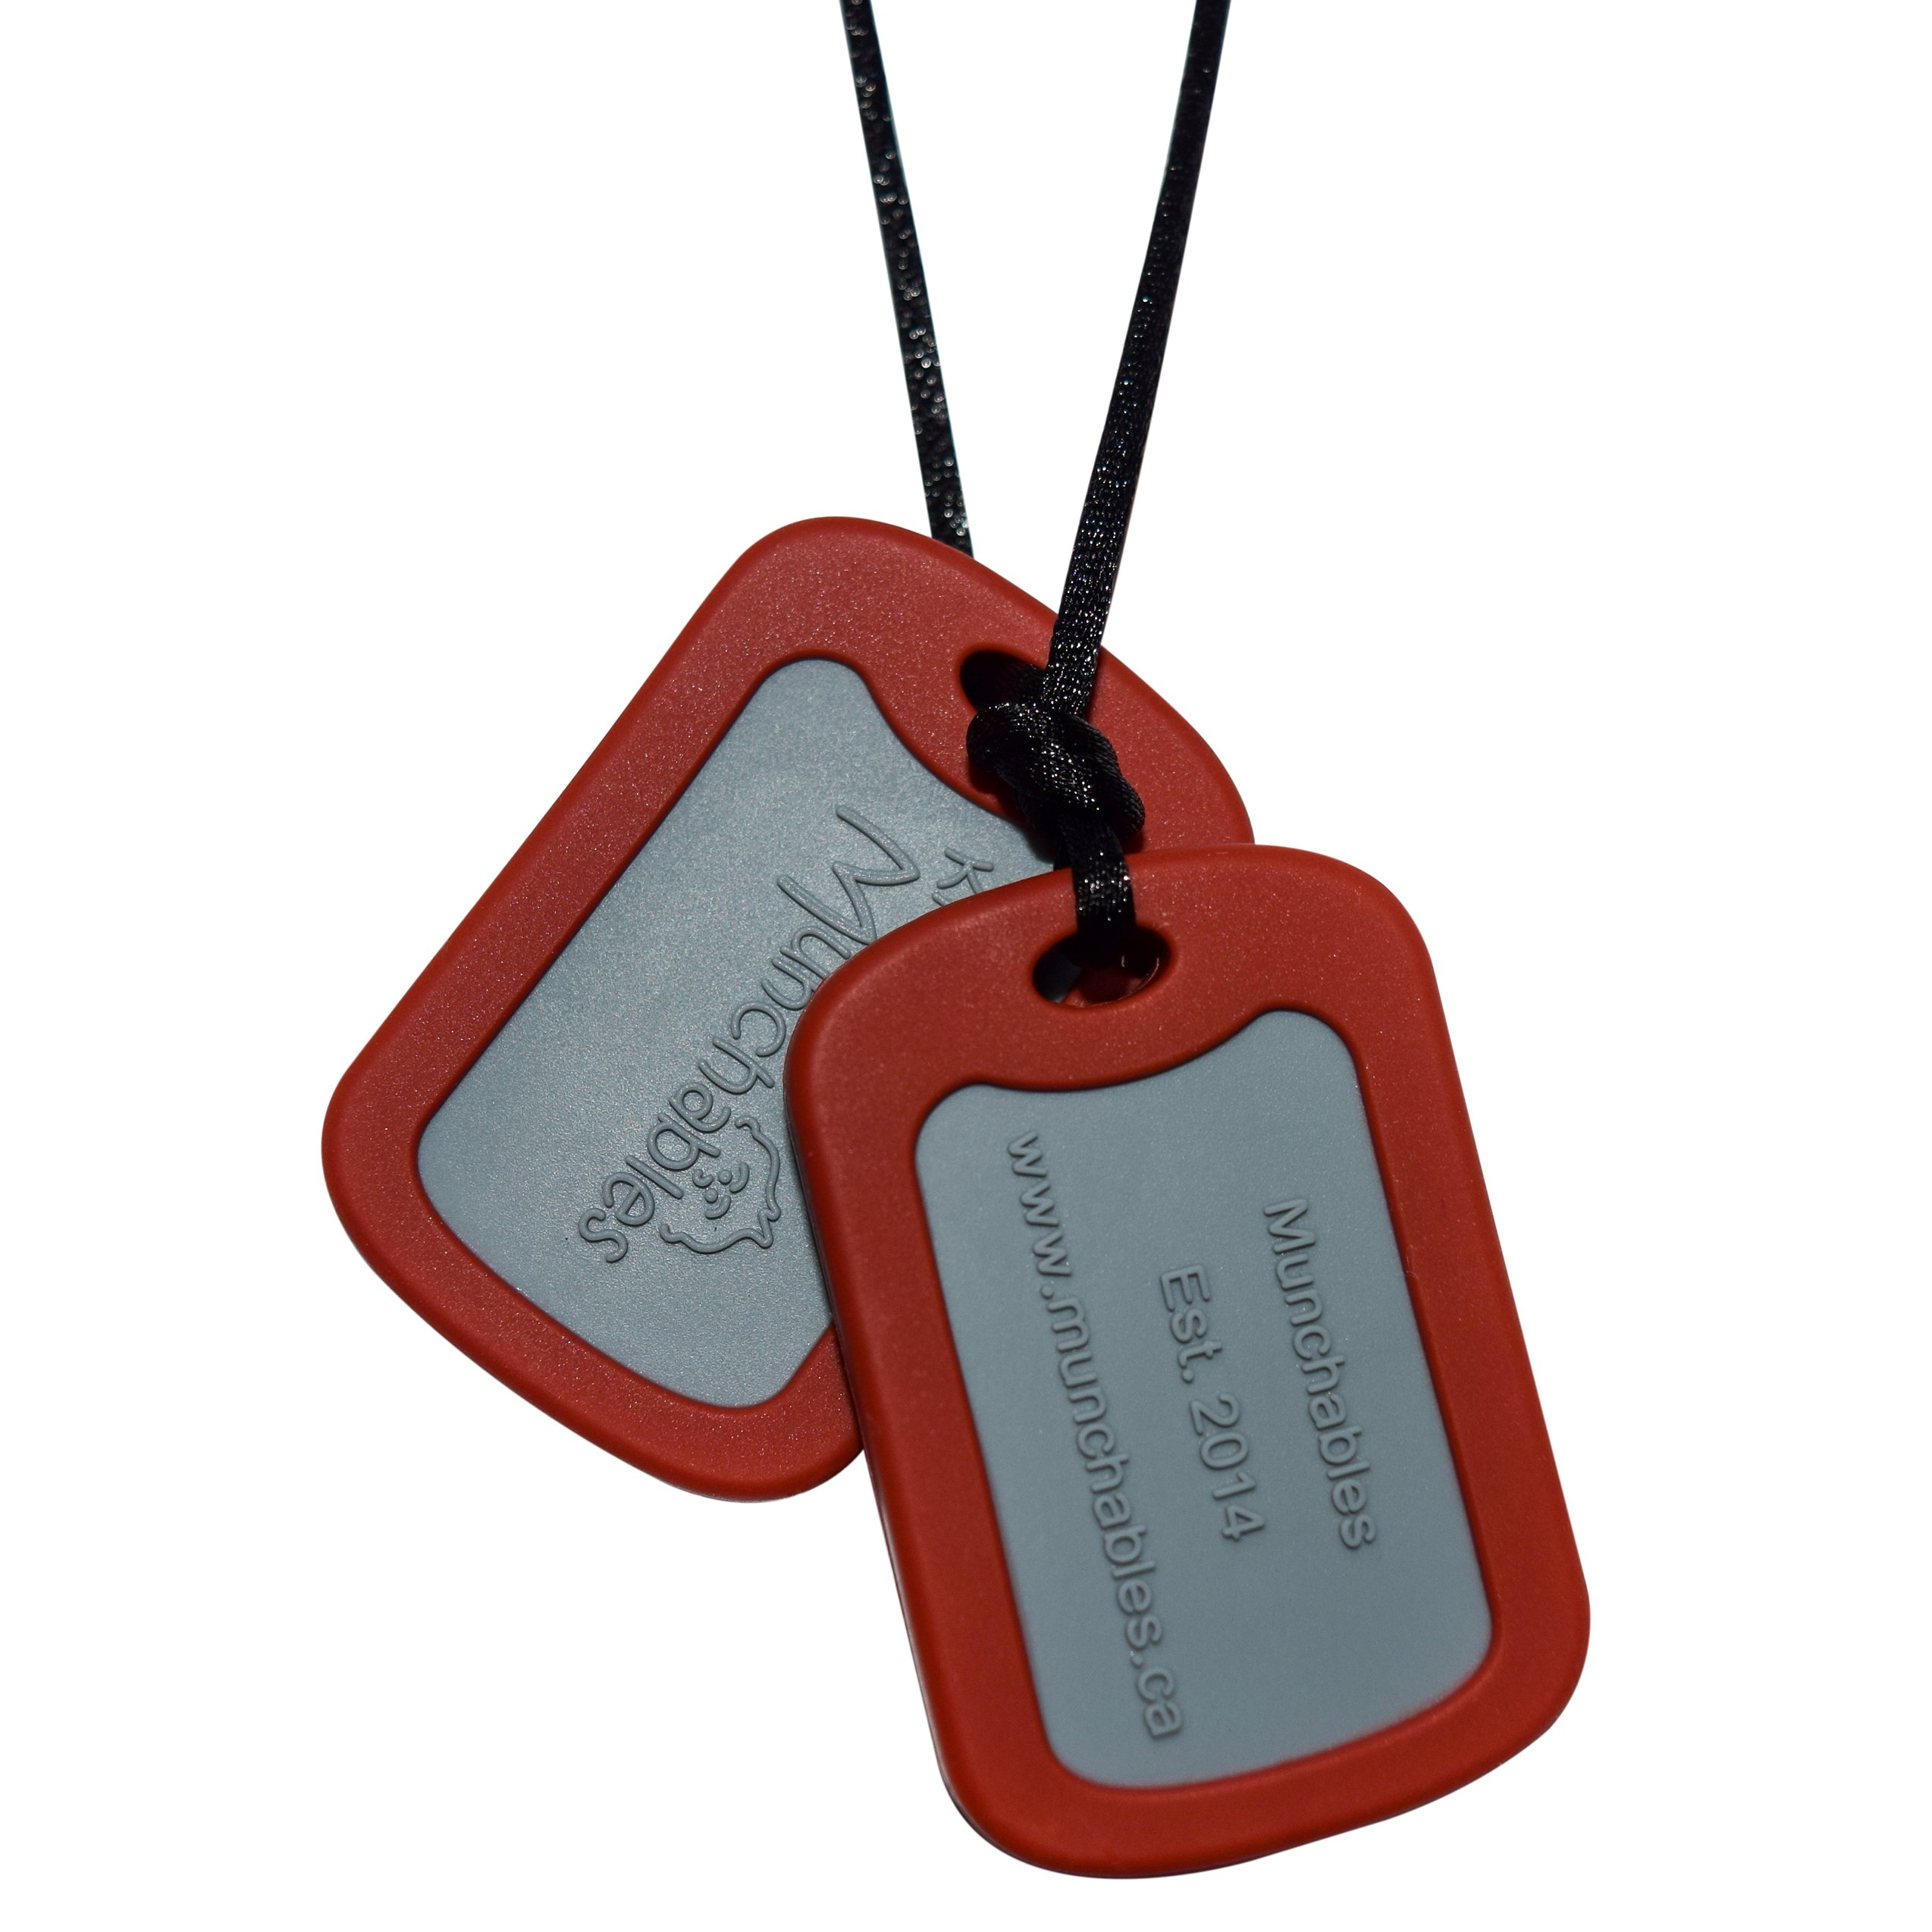 Sensory Oral Motor Aide Chewelry Necklace - Chewy Jewelry for Sensory-Focused Kids with Autism Or Special Needs - Calms Kids and Reduces Biting/Chewing/Fidgeting – Military Dog Tags (Dark Red)